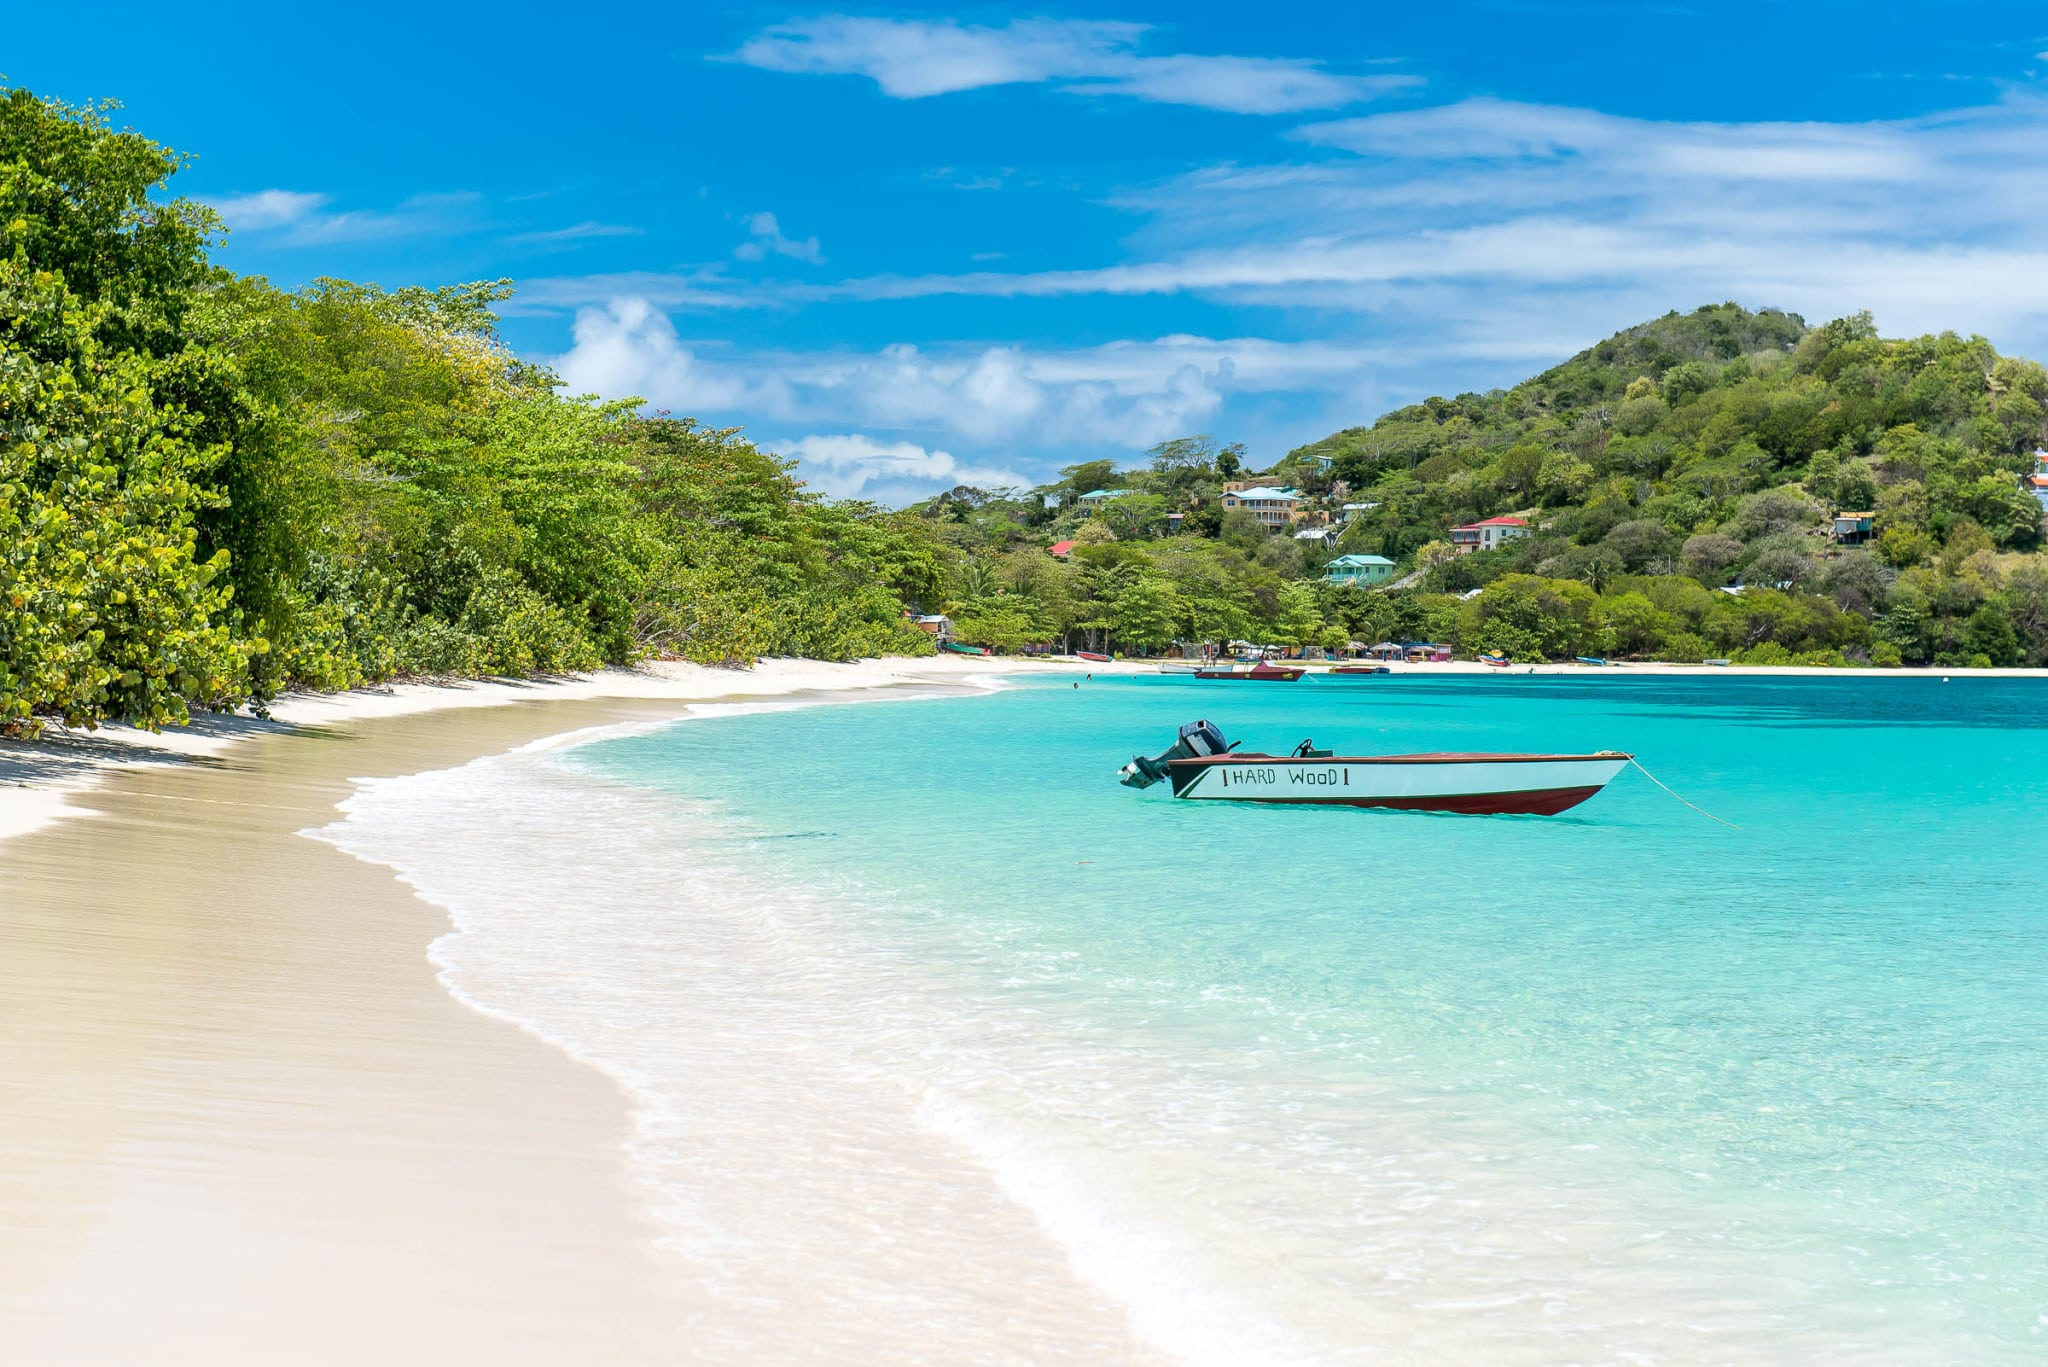 Paradise Found, Lost, And Found Again at Paradise Beach, Carriacou